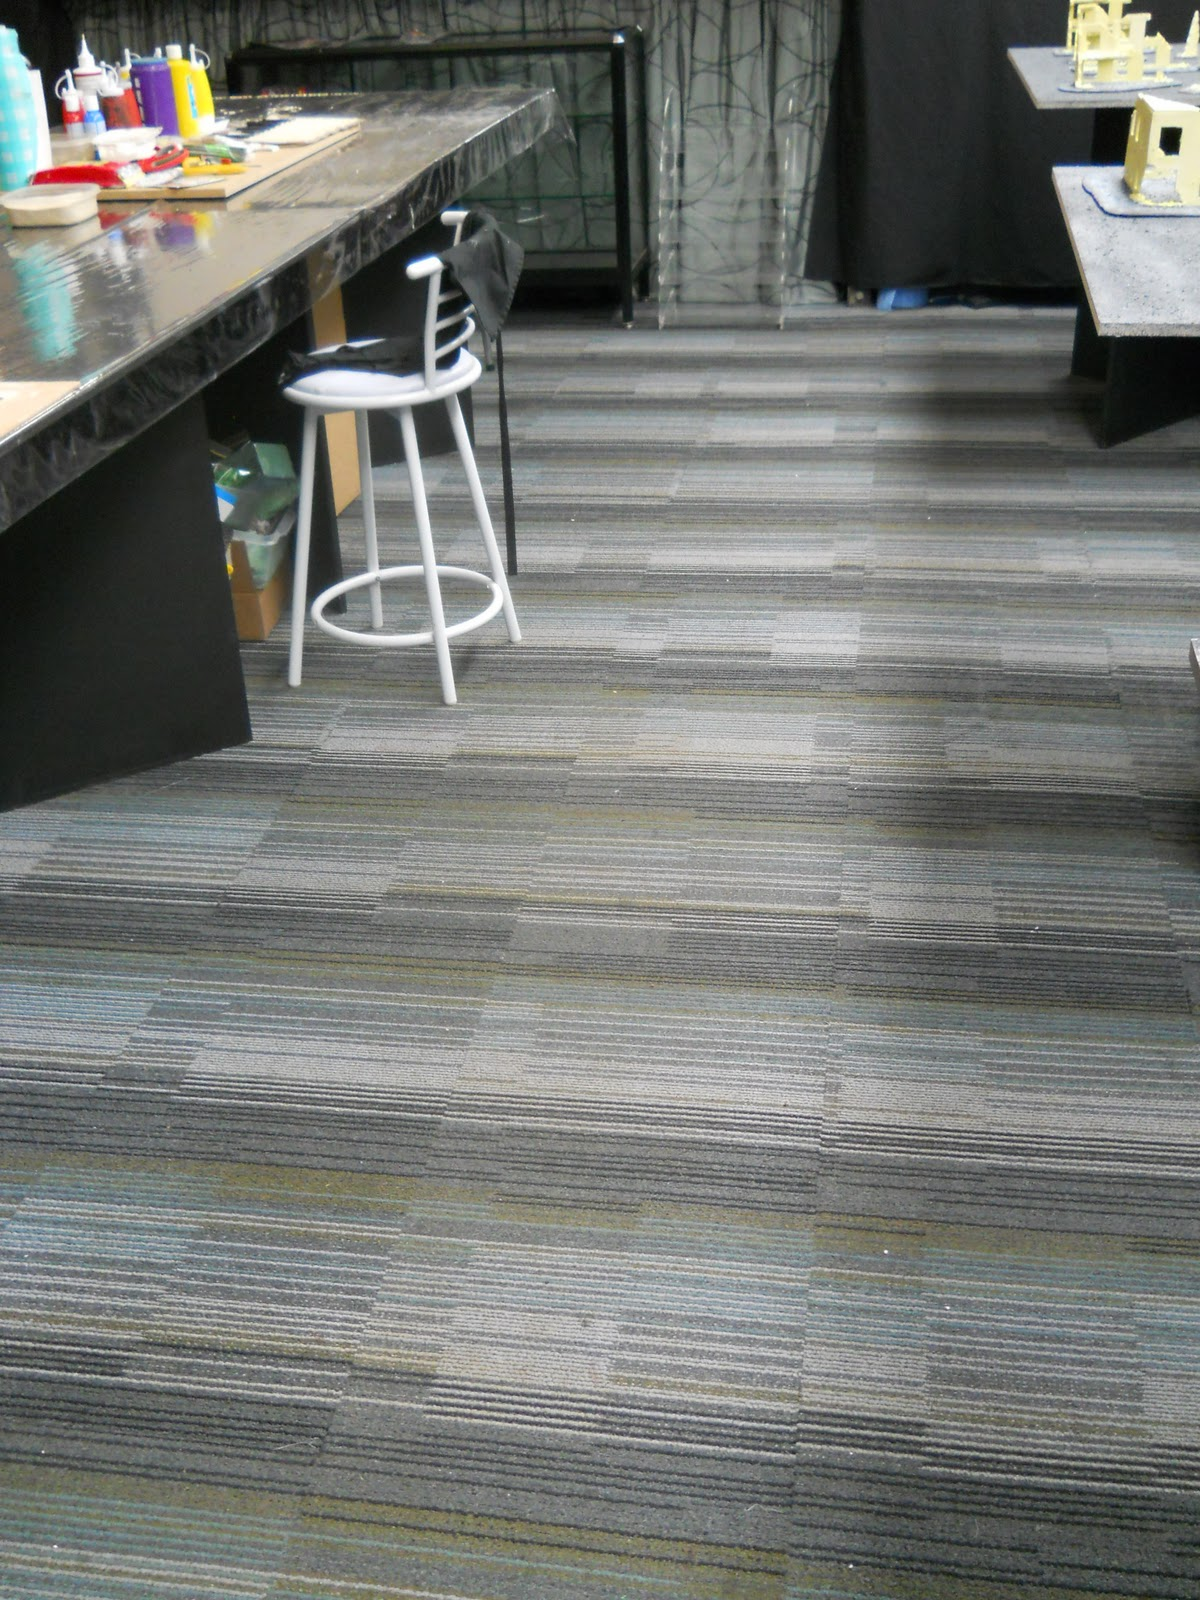 secondhand carpet tiles u002639uber coolu002639 layed in customeru002639s shed home office conversion tile design ideas modern - Carpet Tile Design Ideas